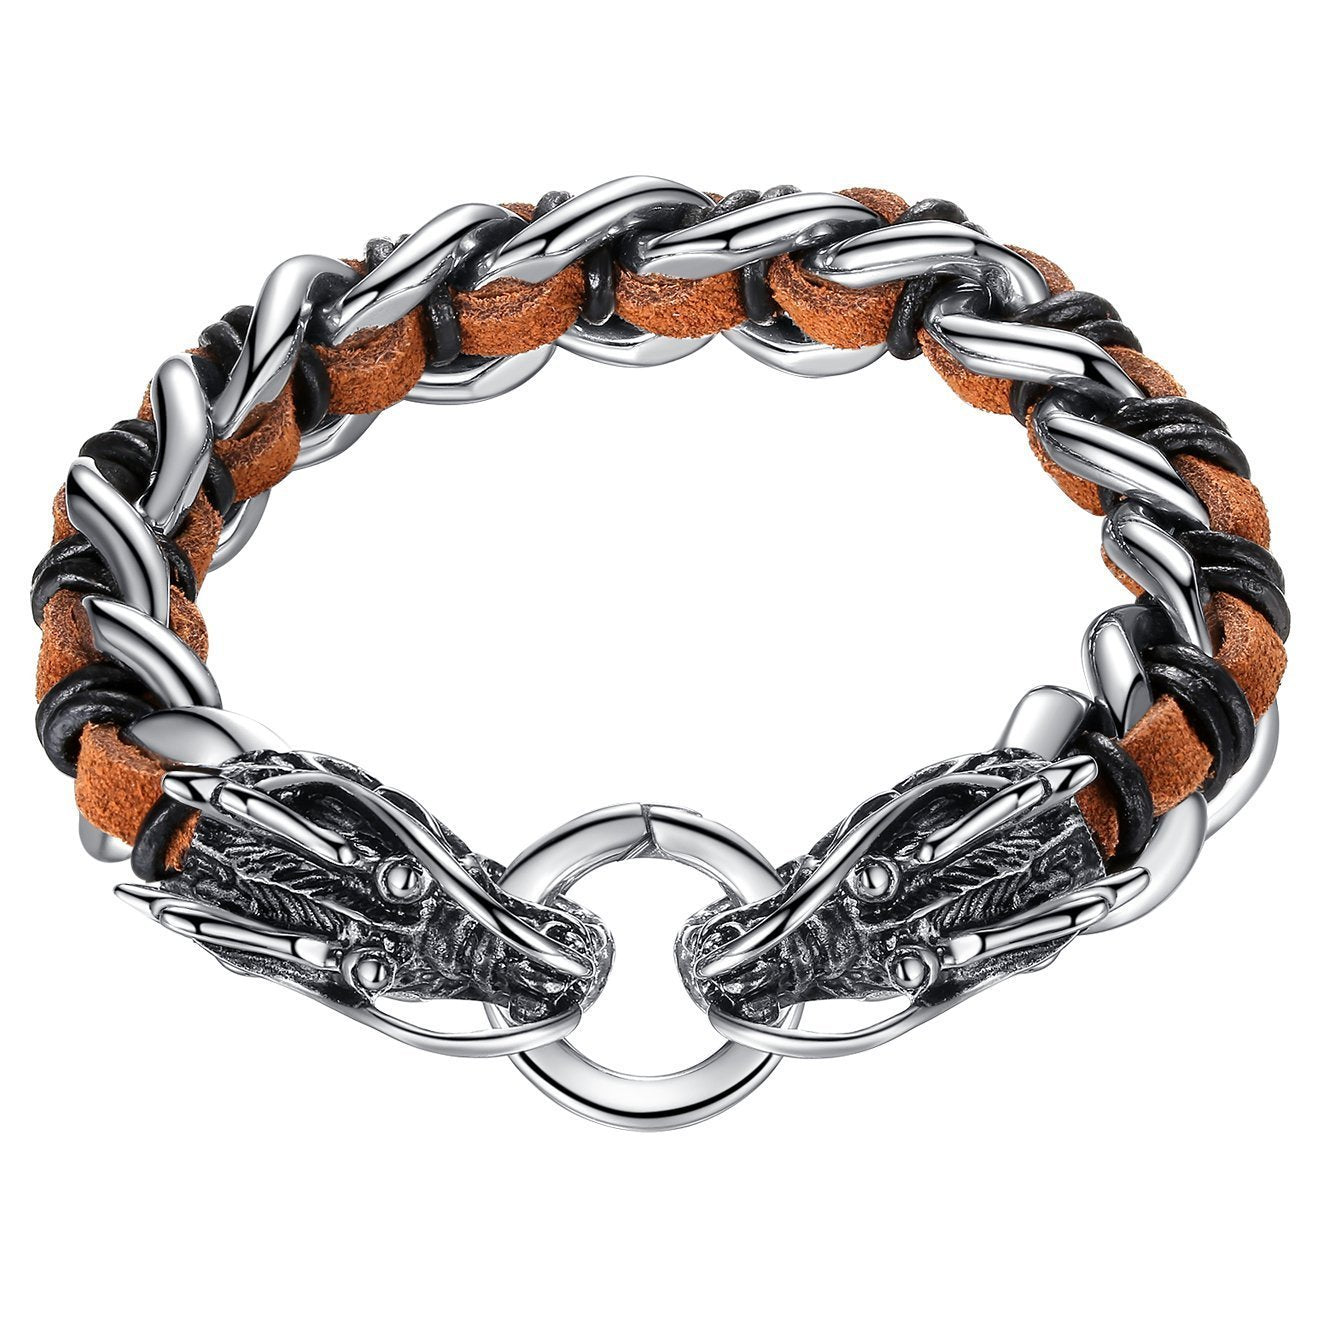 "Men's Stainless Steel and Leather Double Dragon Large and Heavy Biker Bracelet, 9.1"", ccb003"